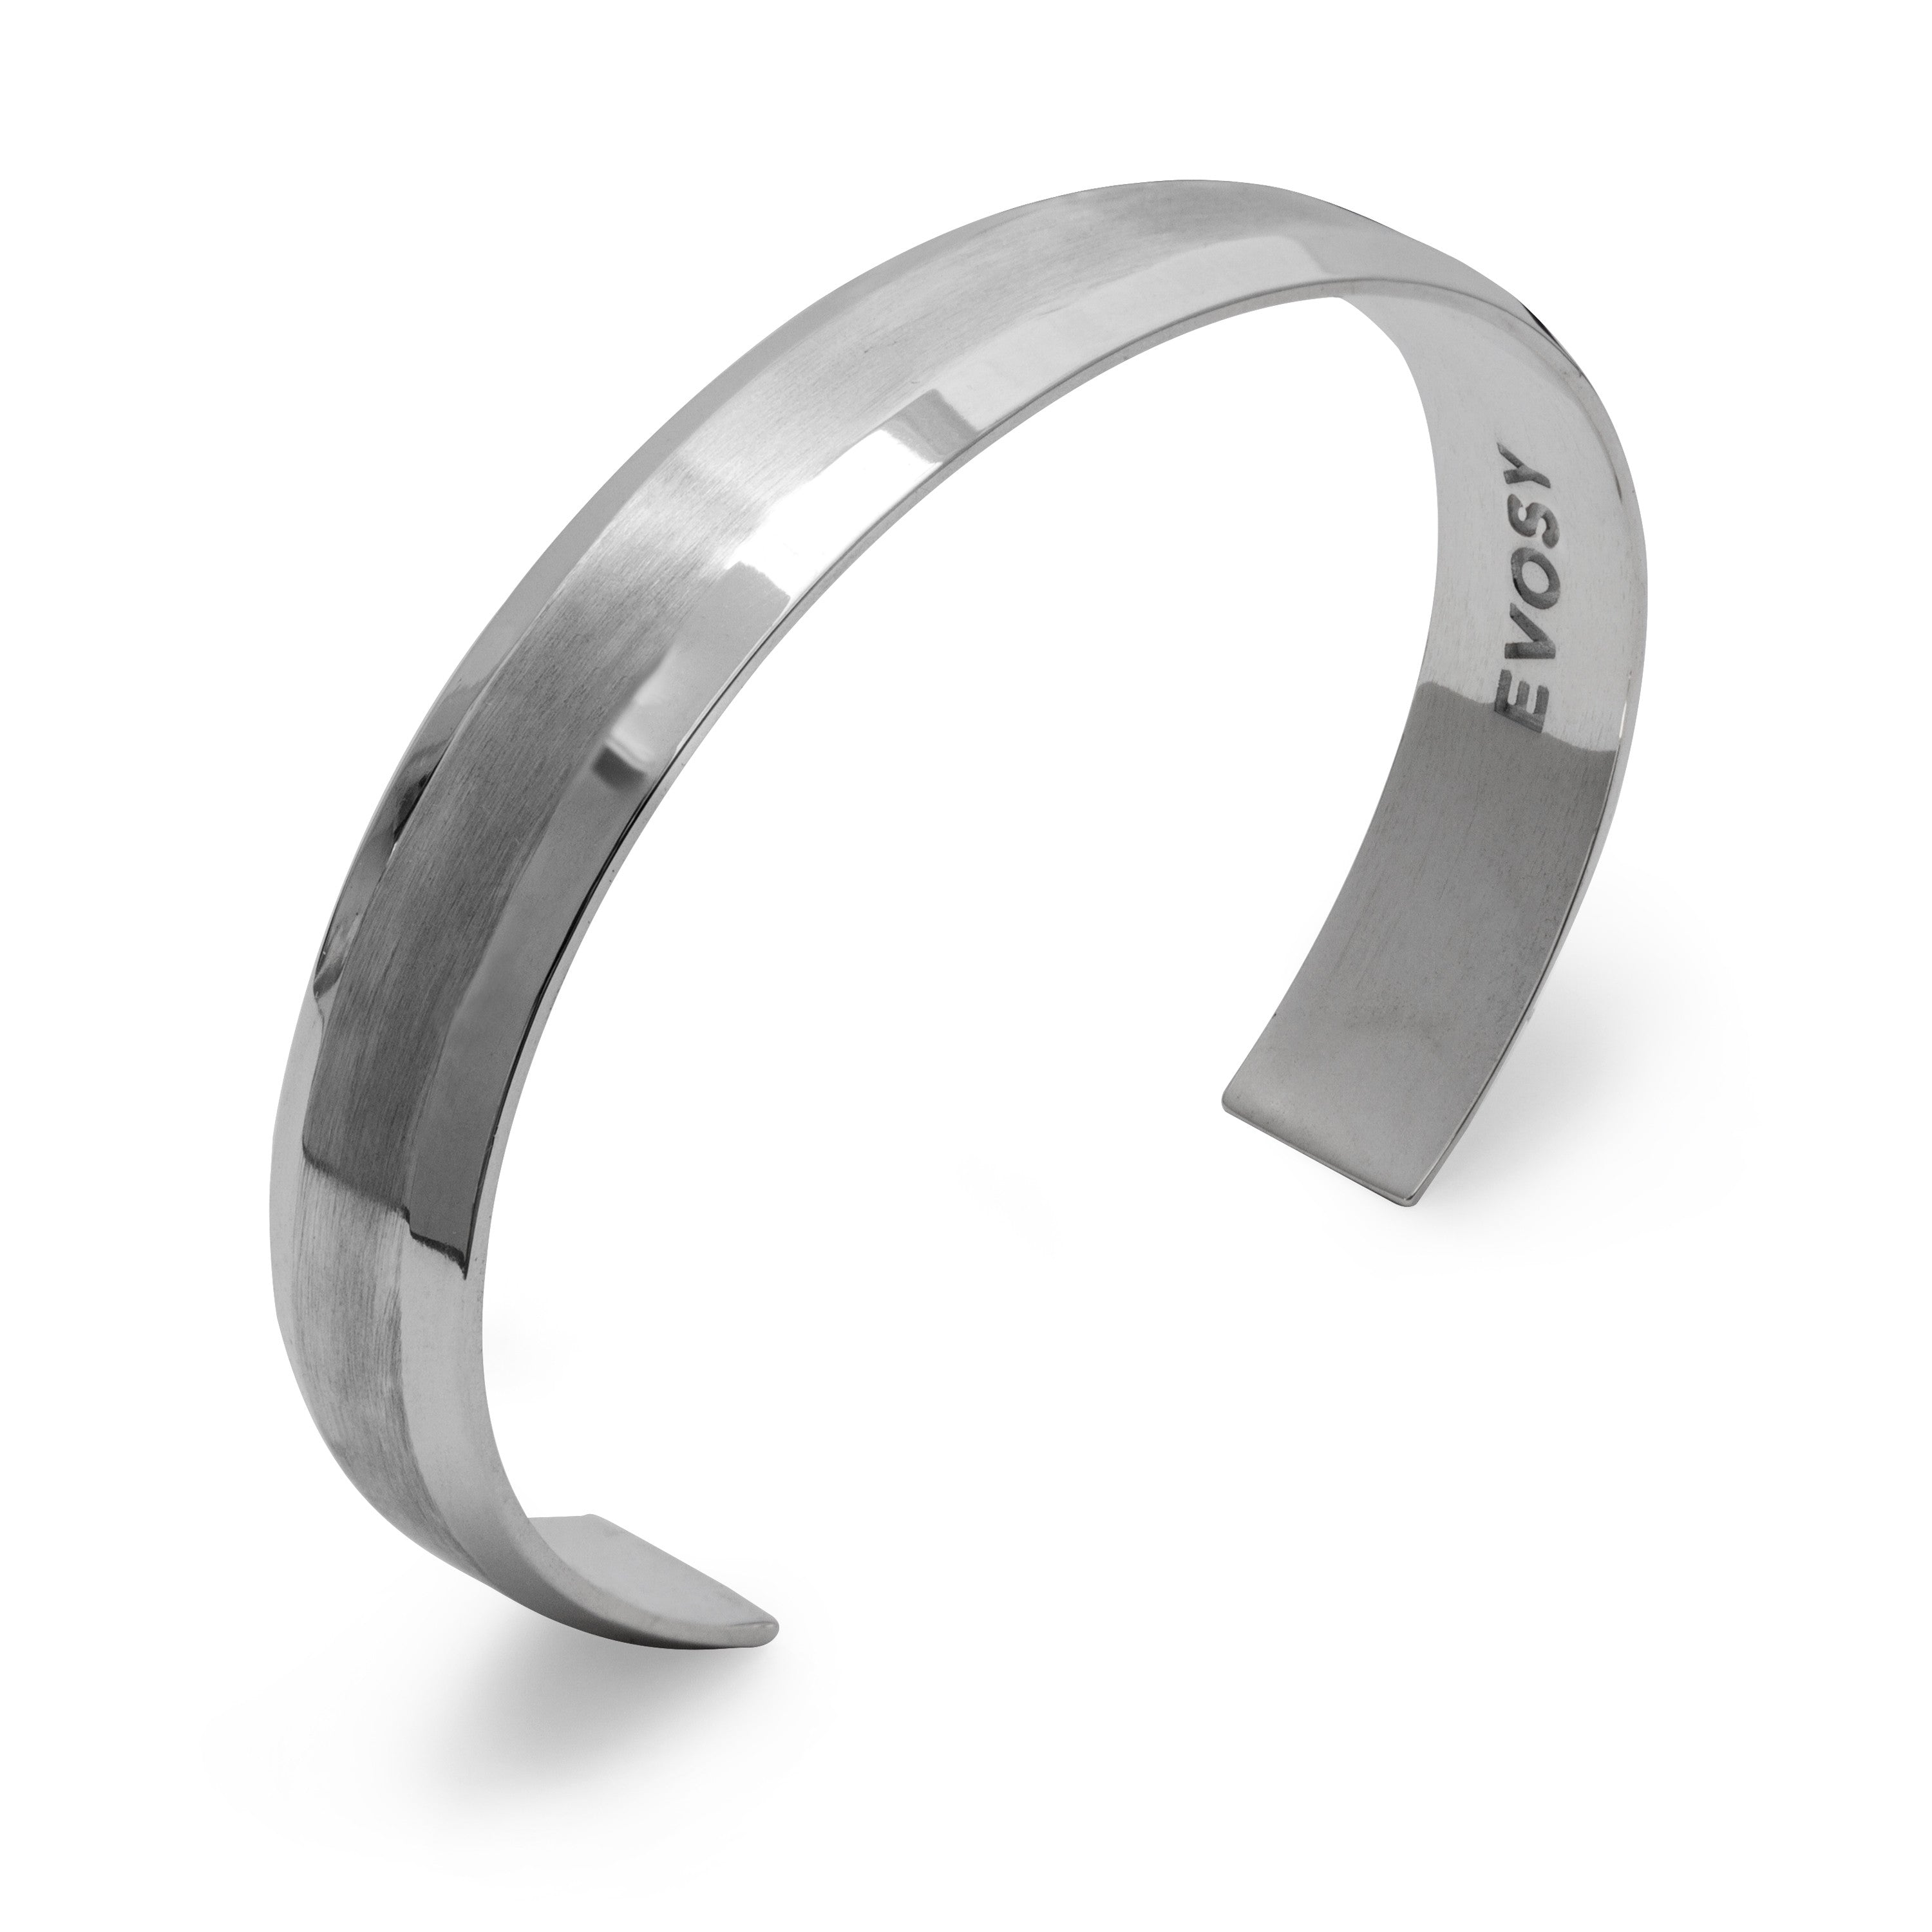 Modern Minimalist Wide Cuff Bracelet in Sterling Silver with Brushed Top Surface